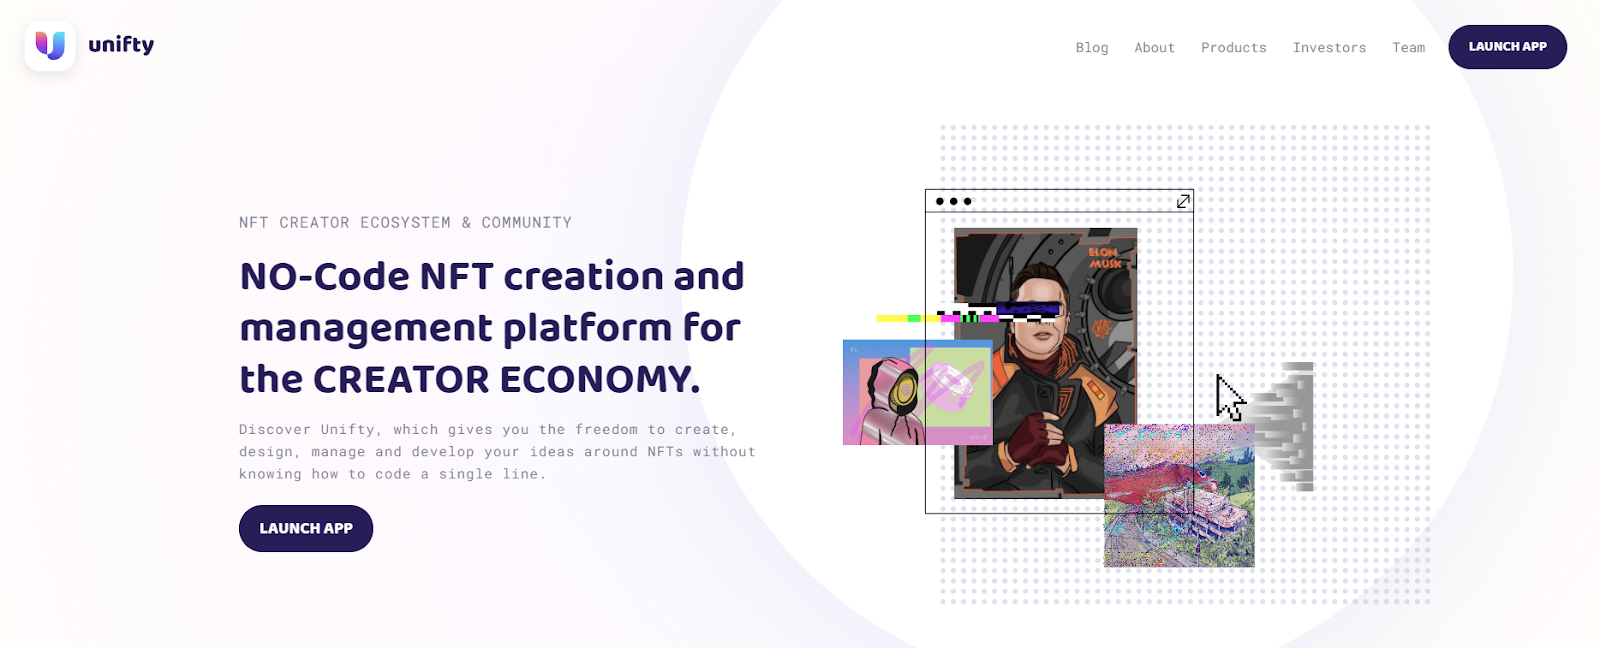 Unifty Rolls Out Community Governance To Offer Creators A Say In The Platform's Development